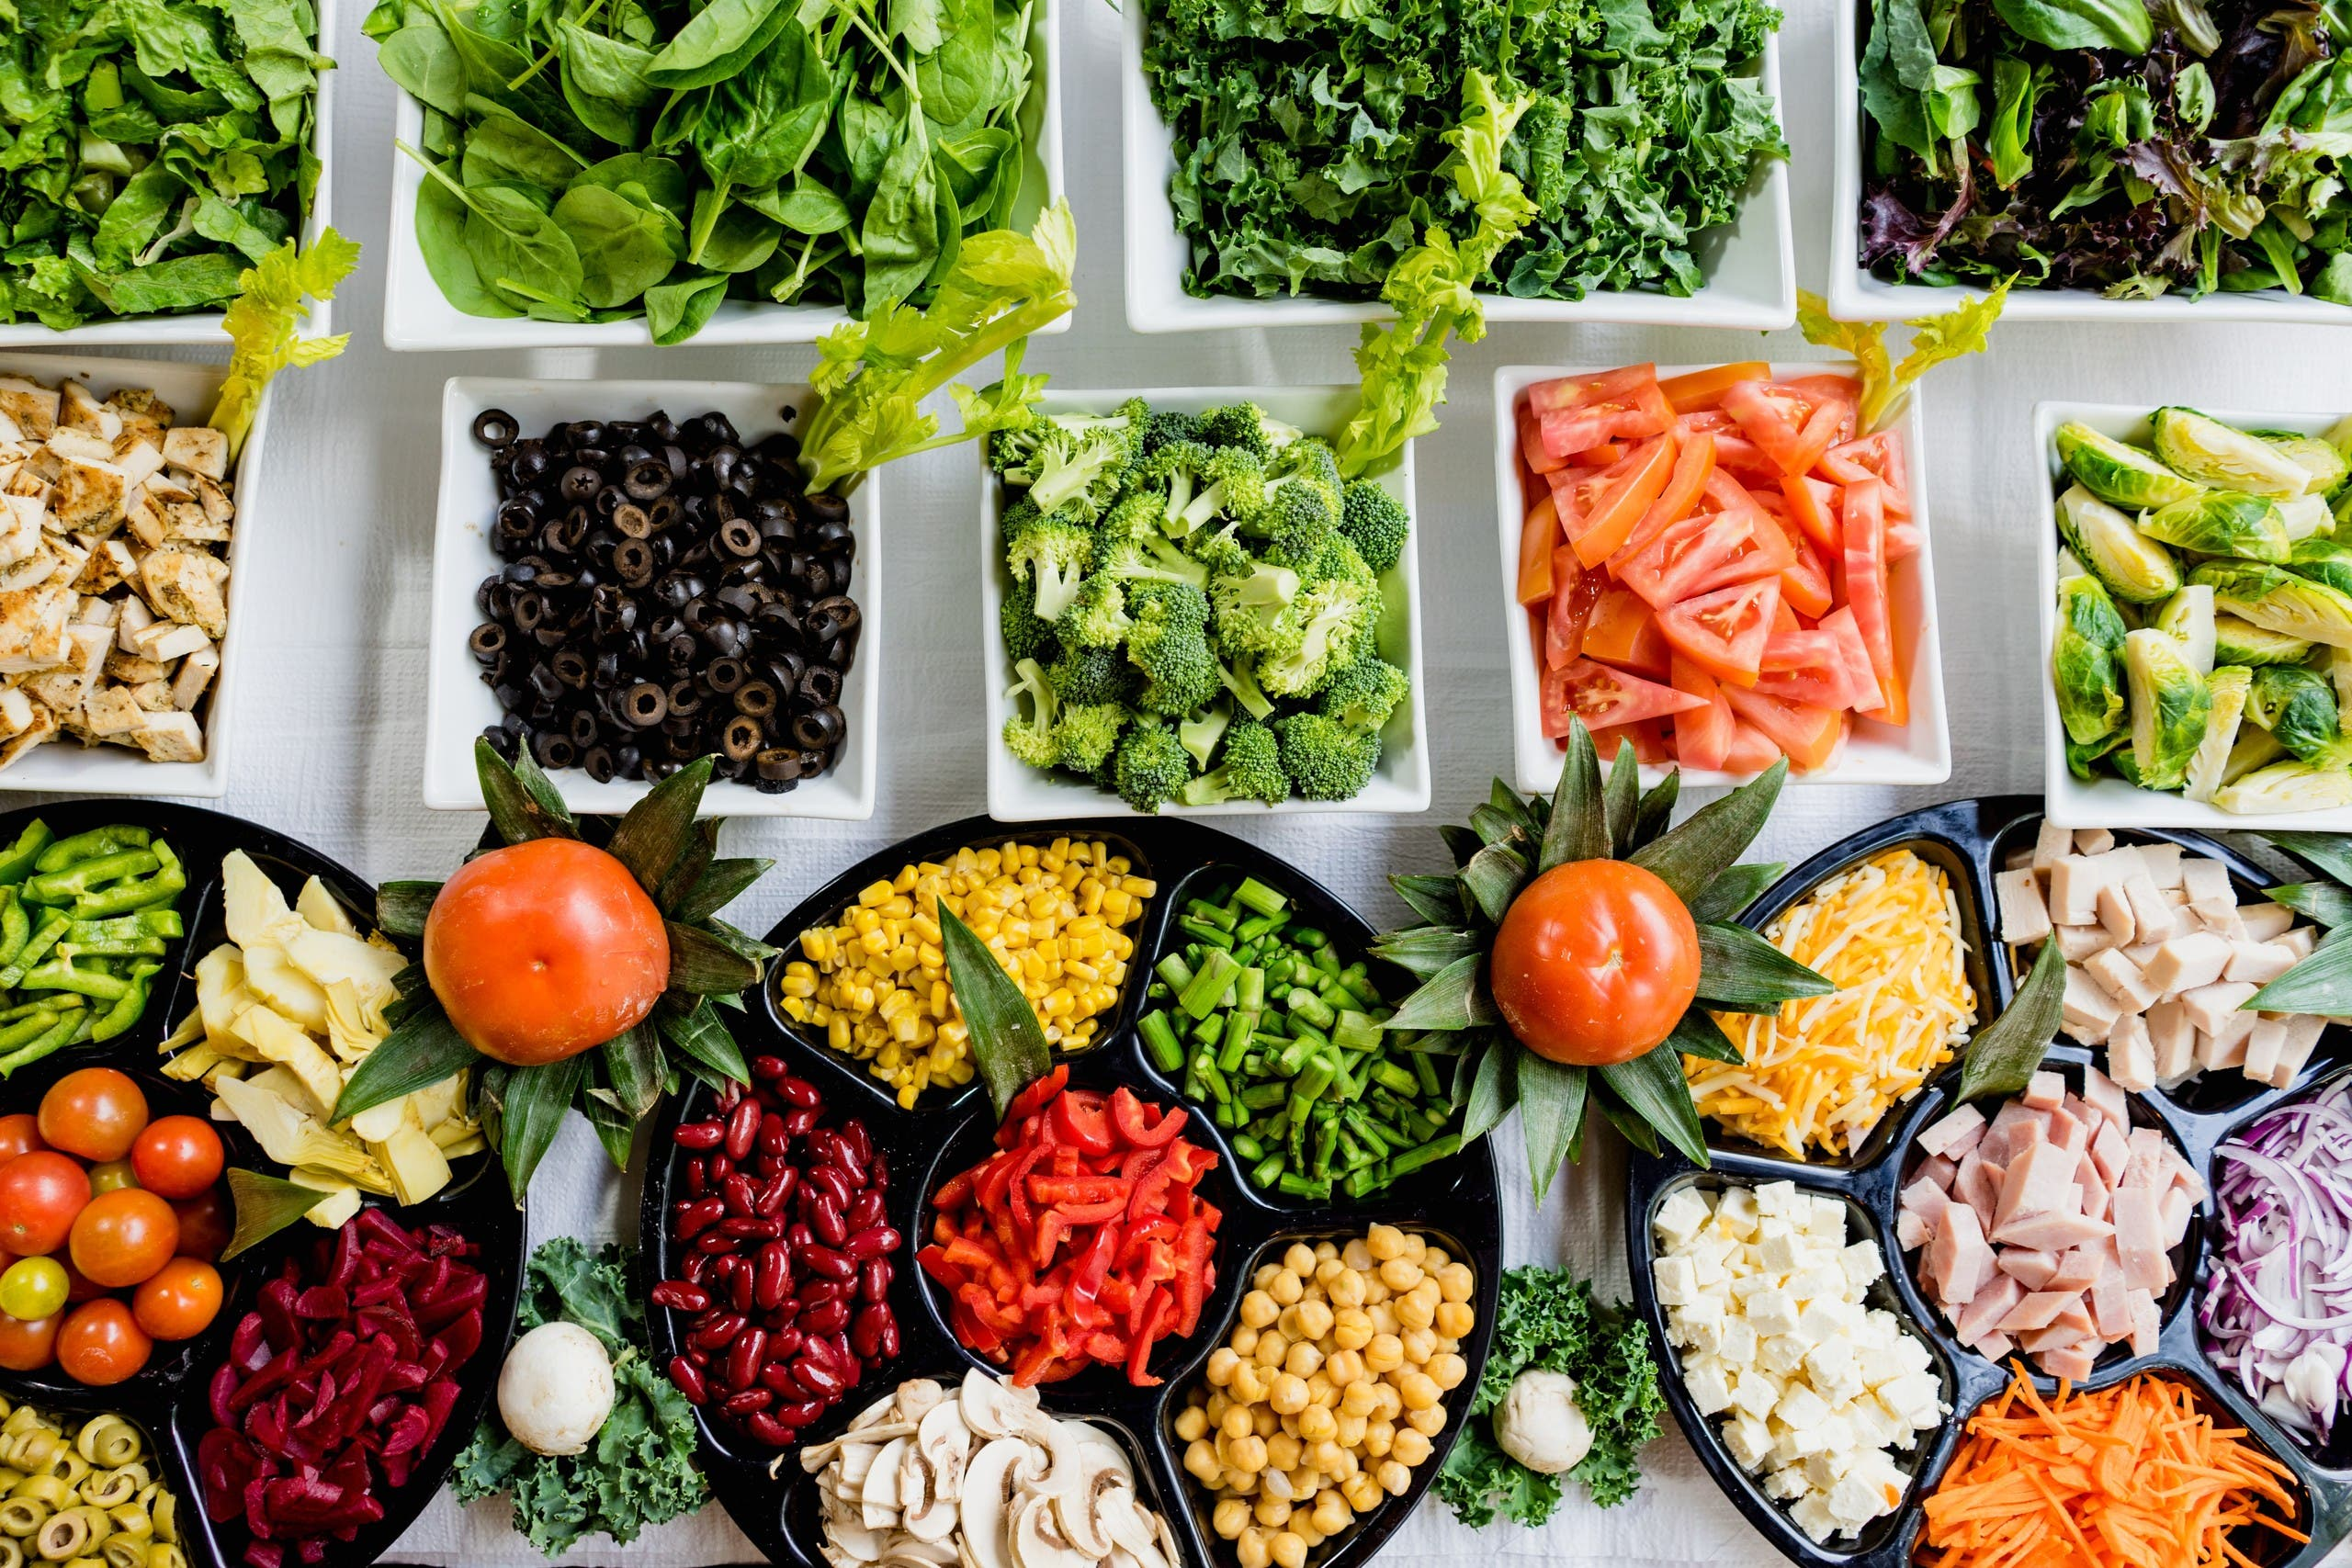 A selection of vegetables such as spinach, carrots and broccoli. (Unsplash, Dan Gold)